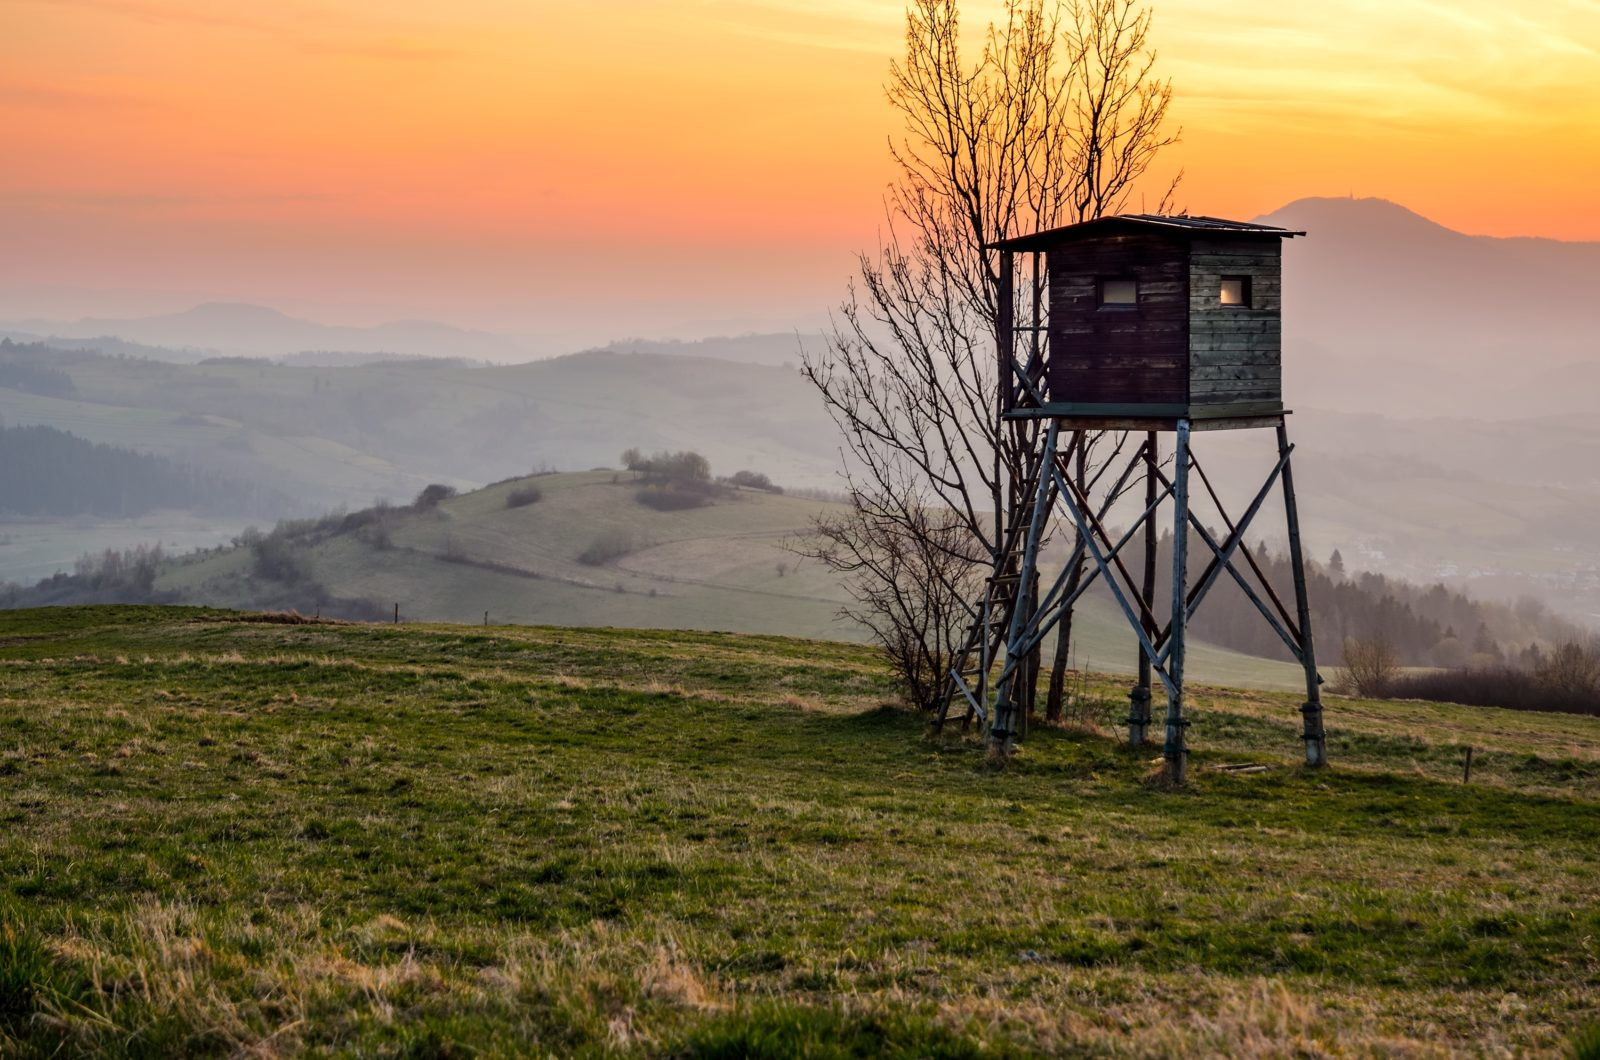 Hunting pulpit and the setting sun over the hills.